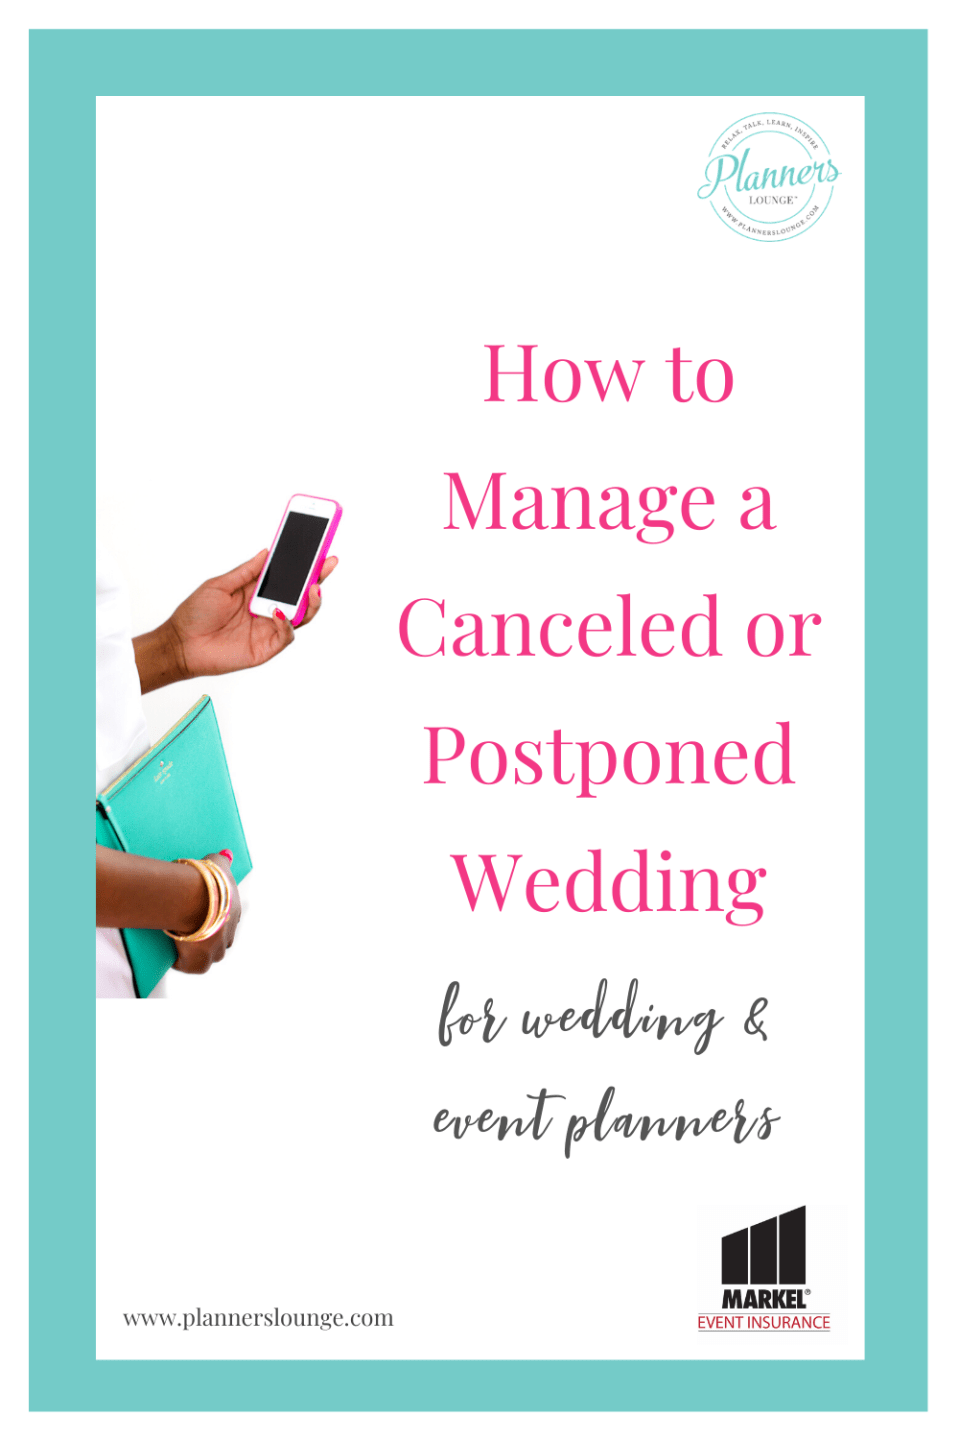 How to Manage a Canceled or Postponed Wedding